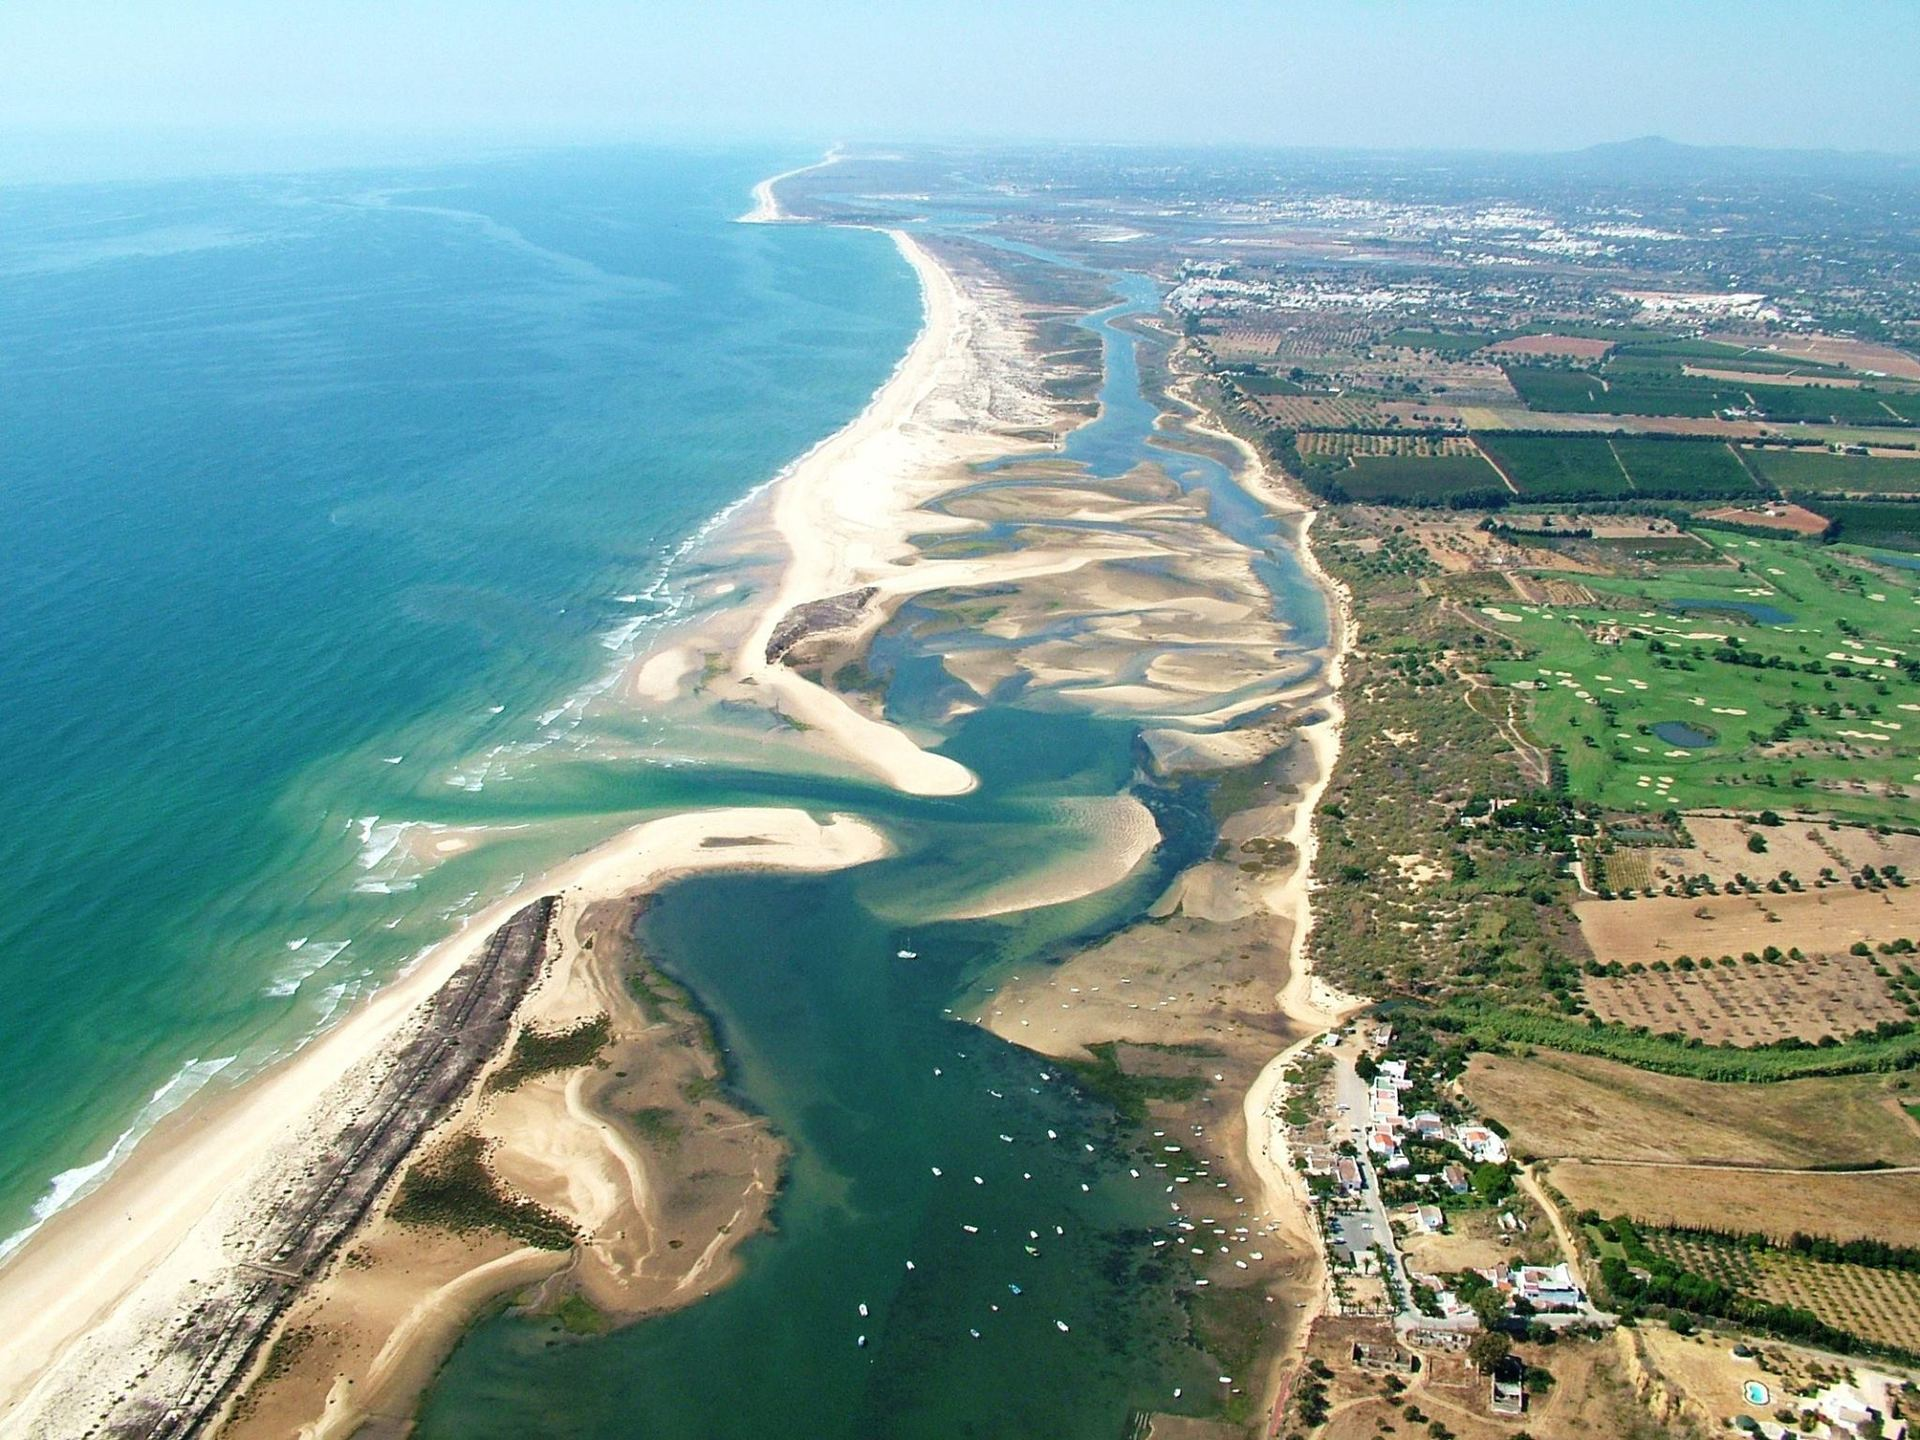 The hidden story of the Ria Formosa - Portugal Resident